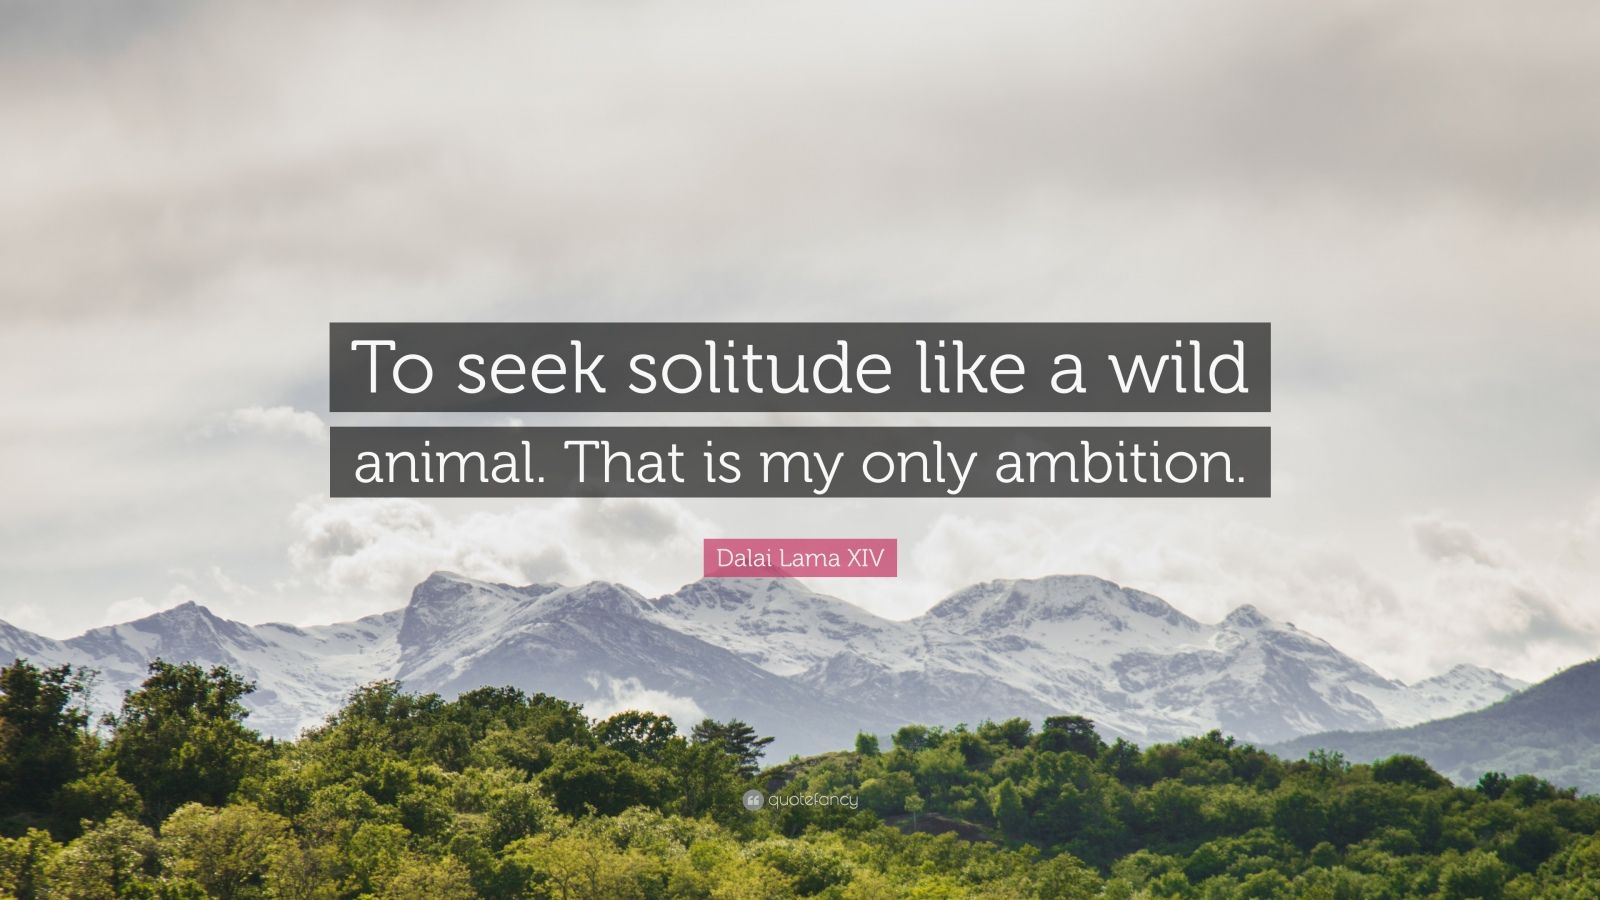 """Dalai Lama XIV Quote: """"To seek solitude like a wild animal. That is my only ambition."""""""